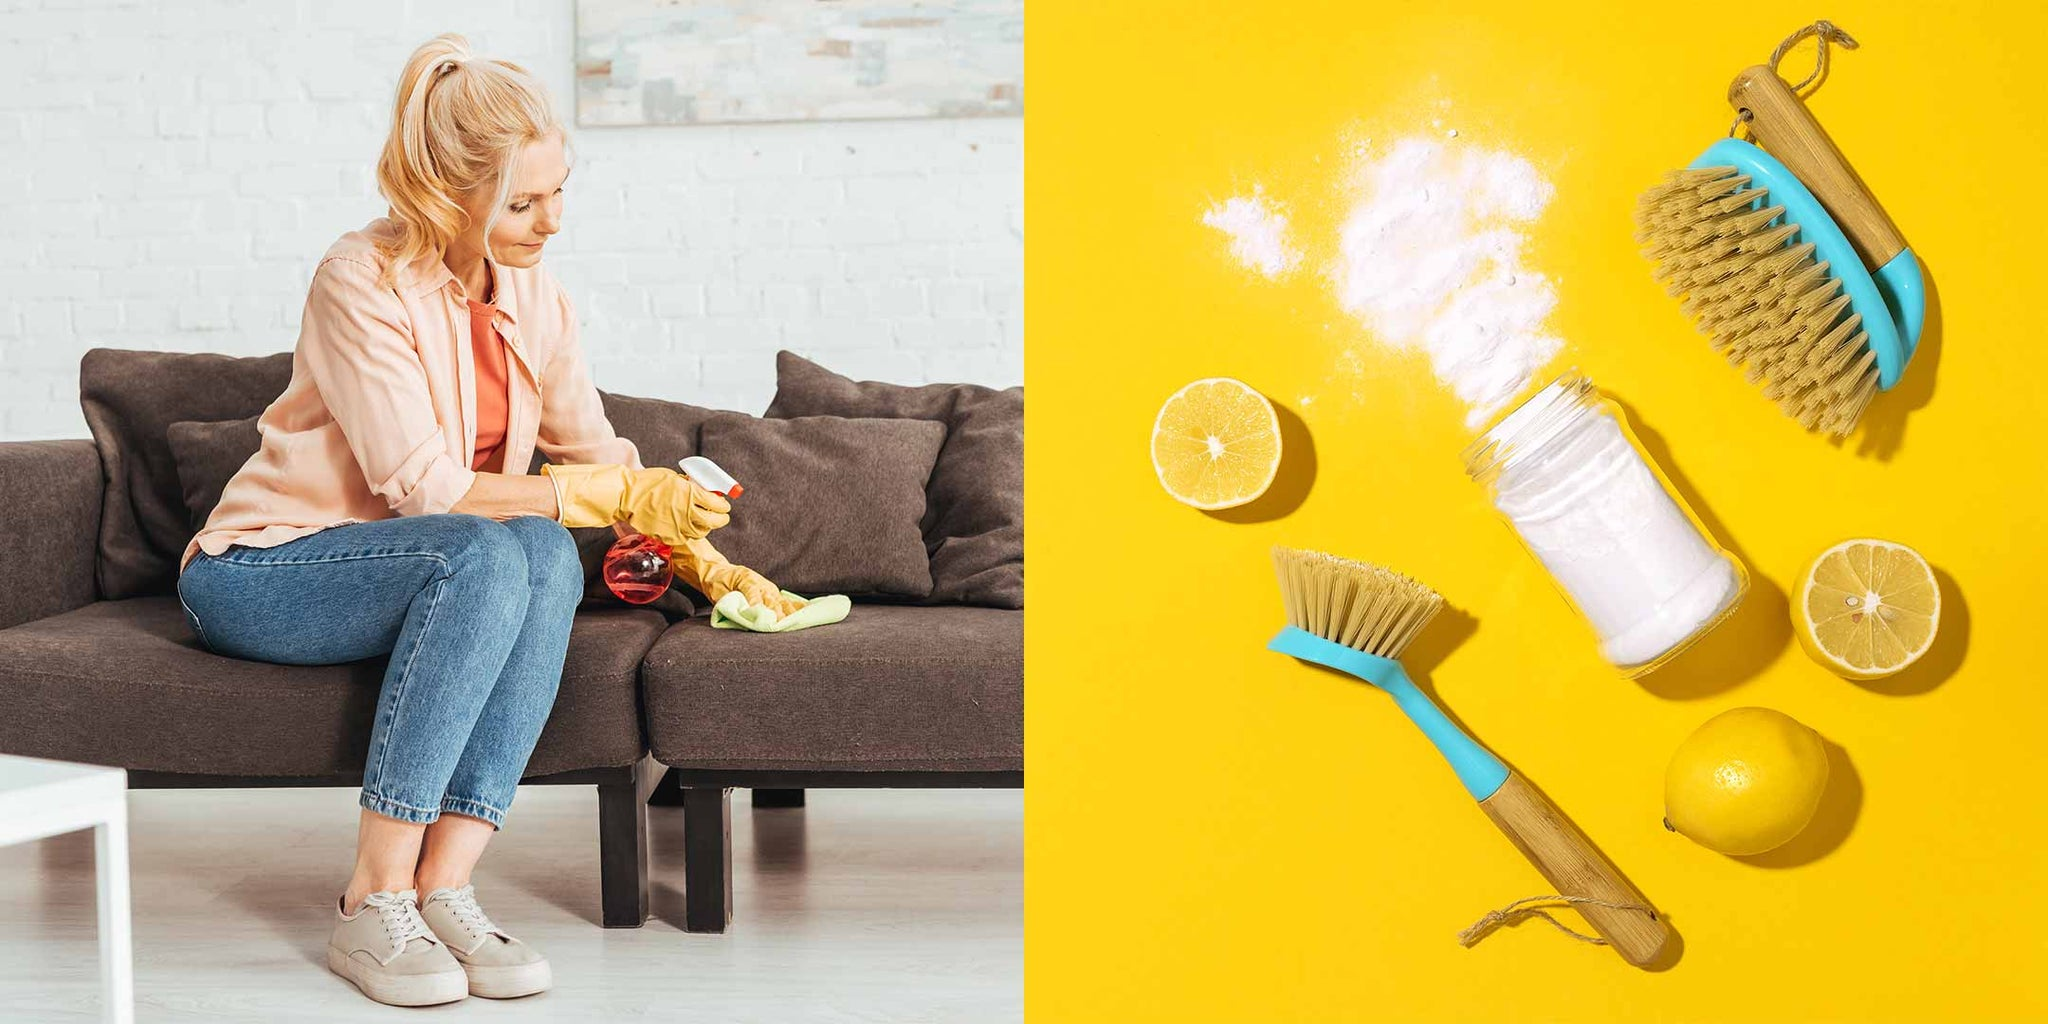 Using baking soda to clean your sofa